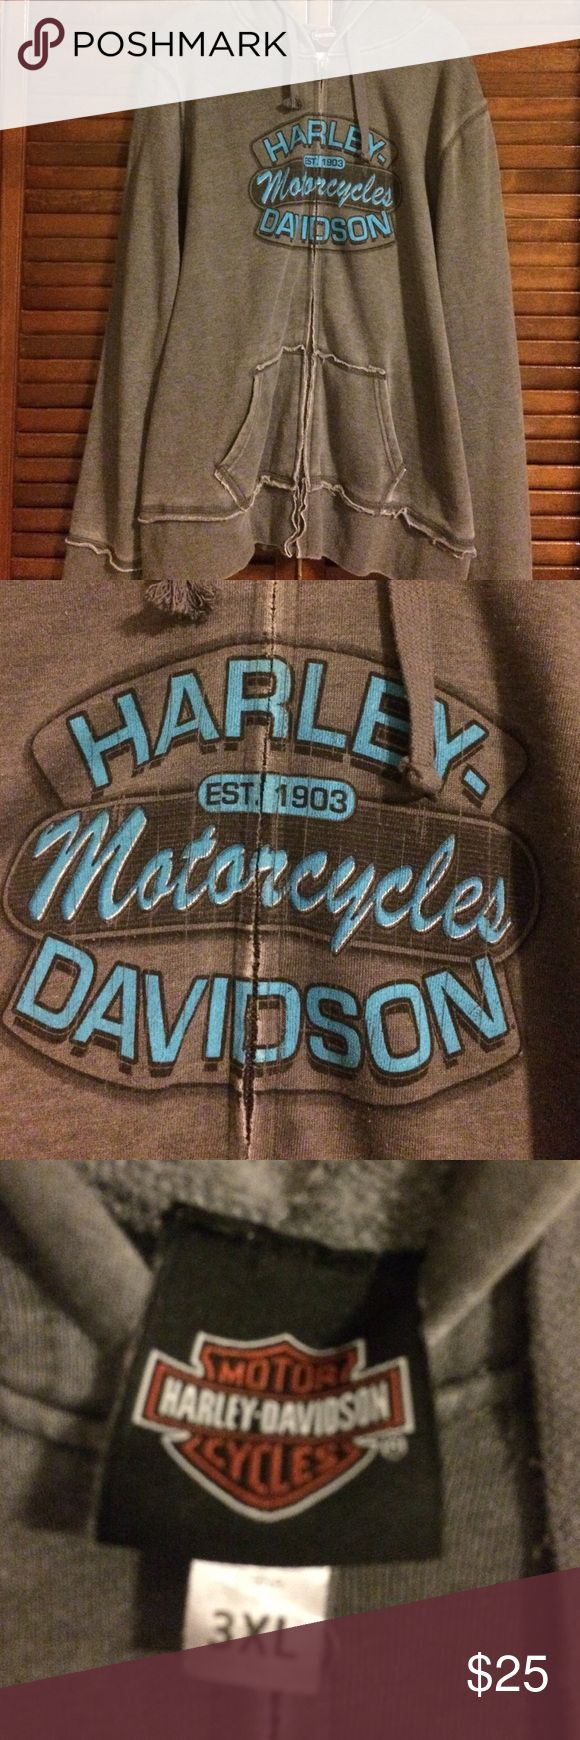 Harley Davidson Jacket Worn a couple times. There is some fraying on the end of one string. Harley-Davidson Jackets & Coats